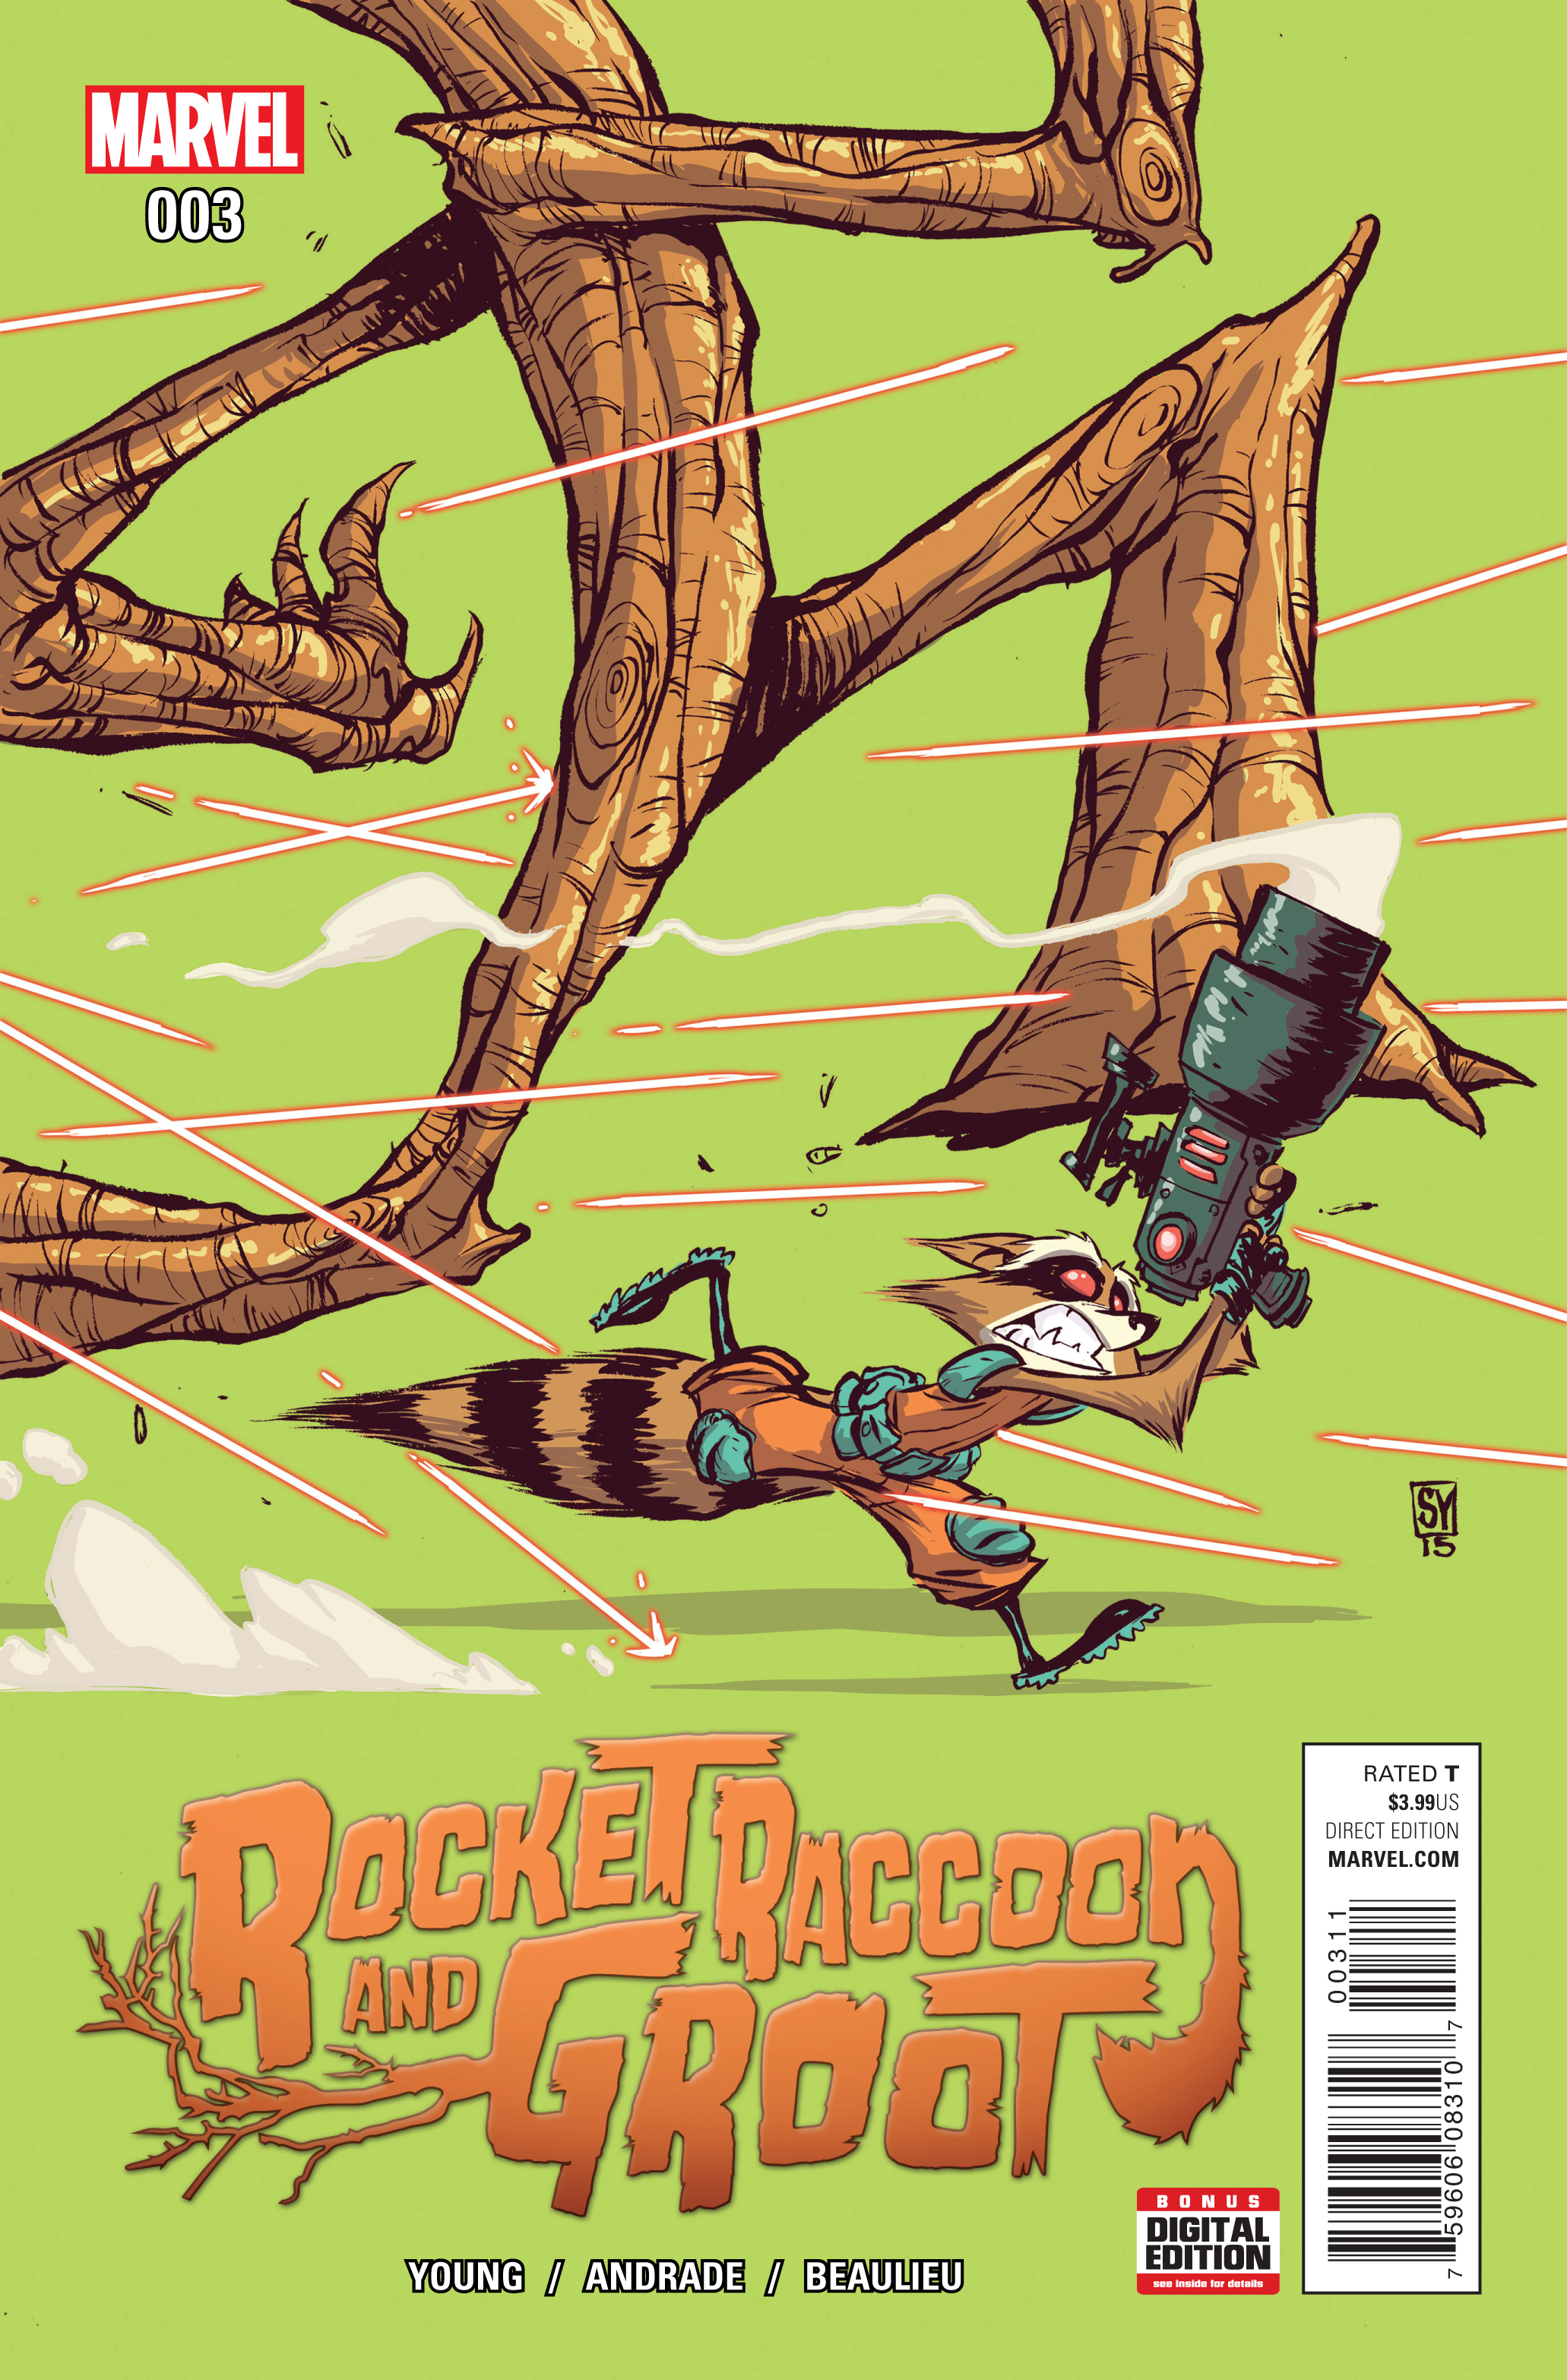 ROCKET RACCOON AND GROOT #3